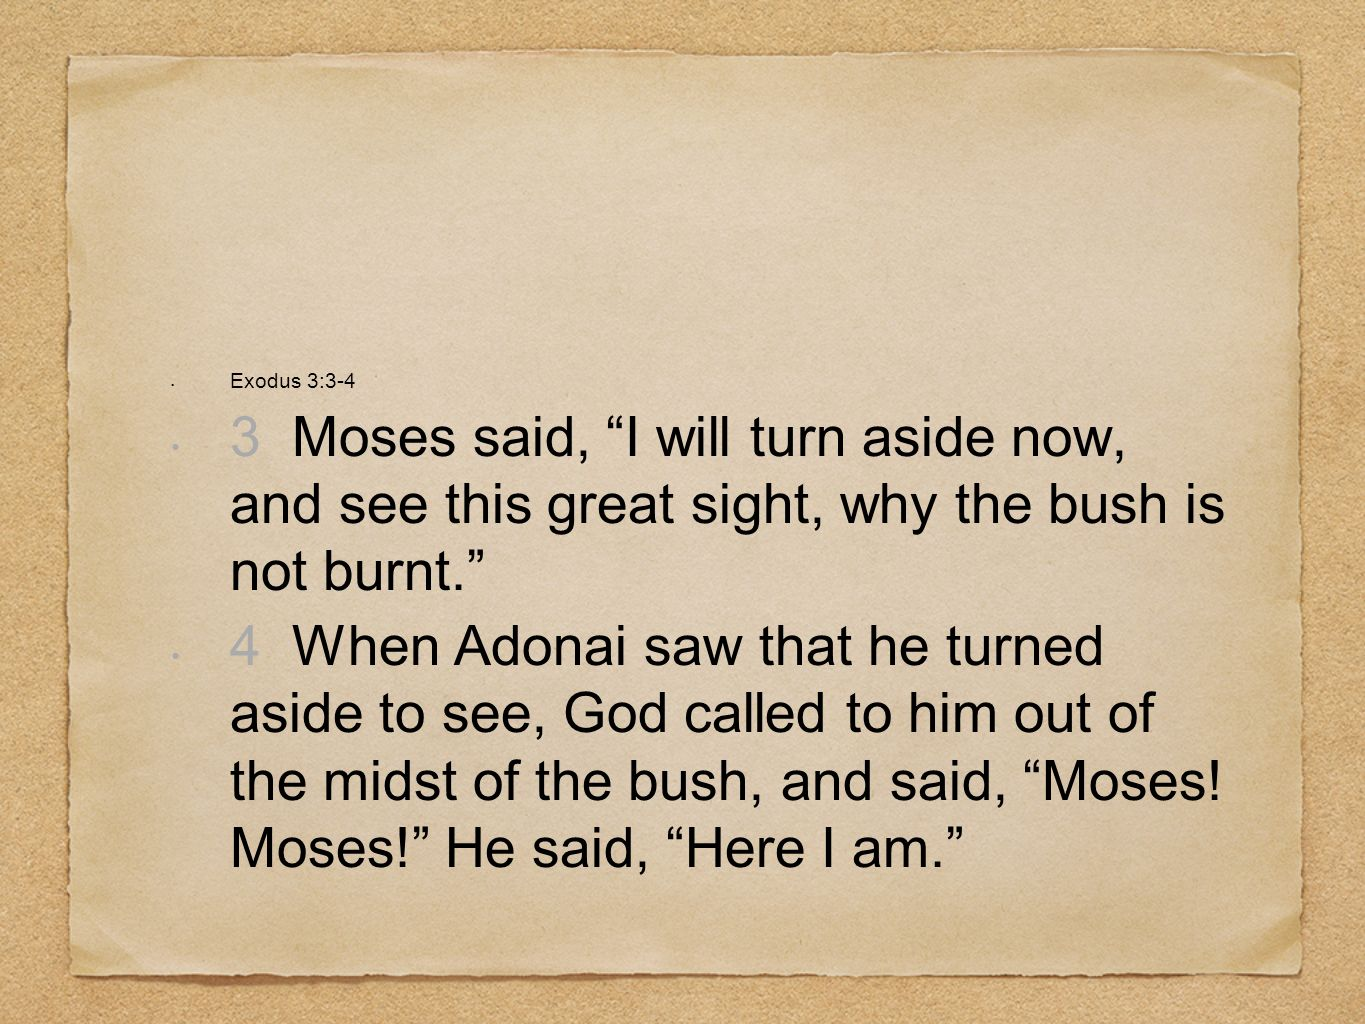 Exodus 3:3-43 Moses said, I will turn aside now, and see this great sight, why the bush is not burnt.